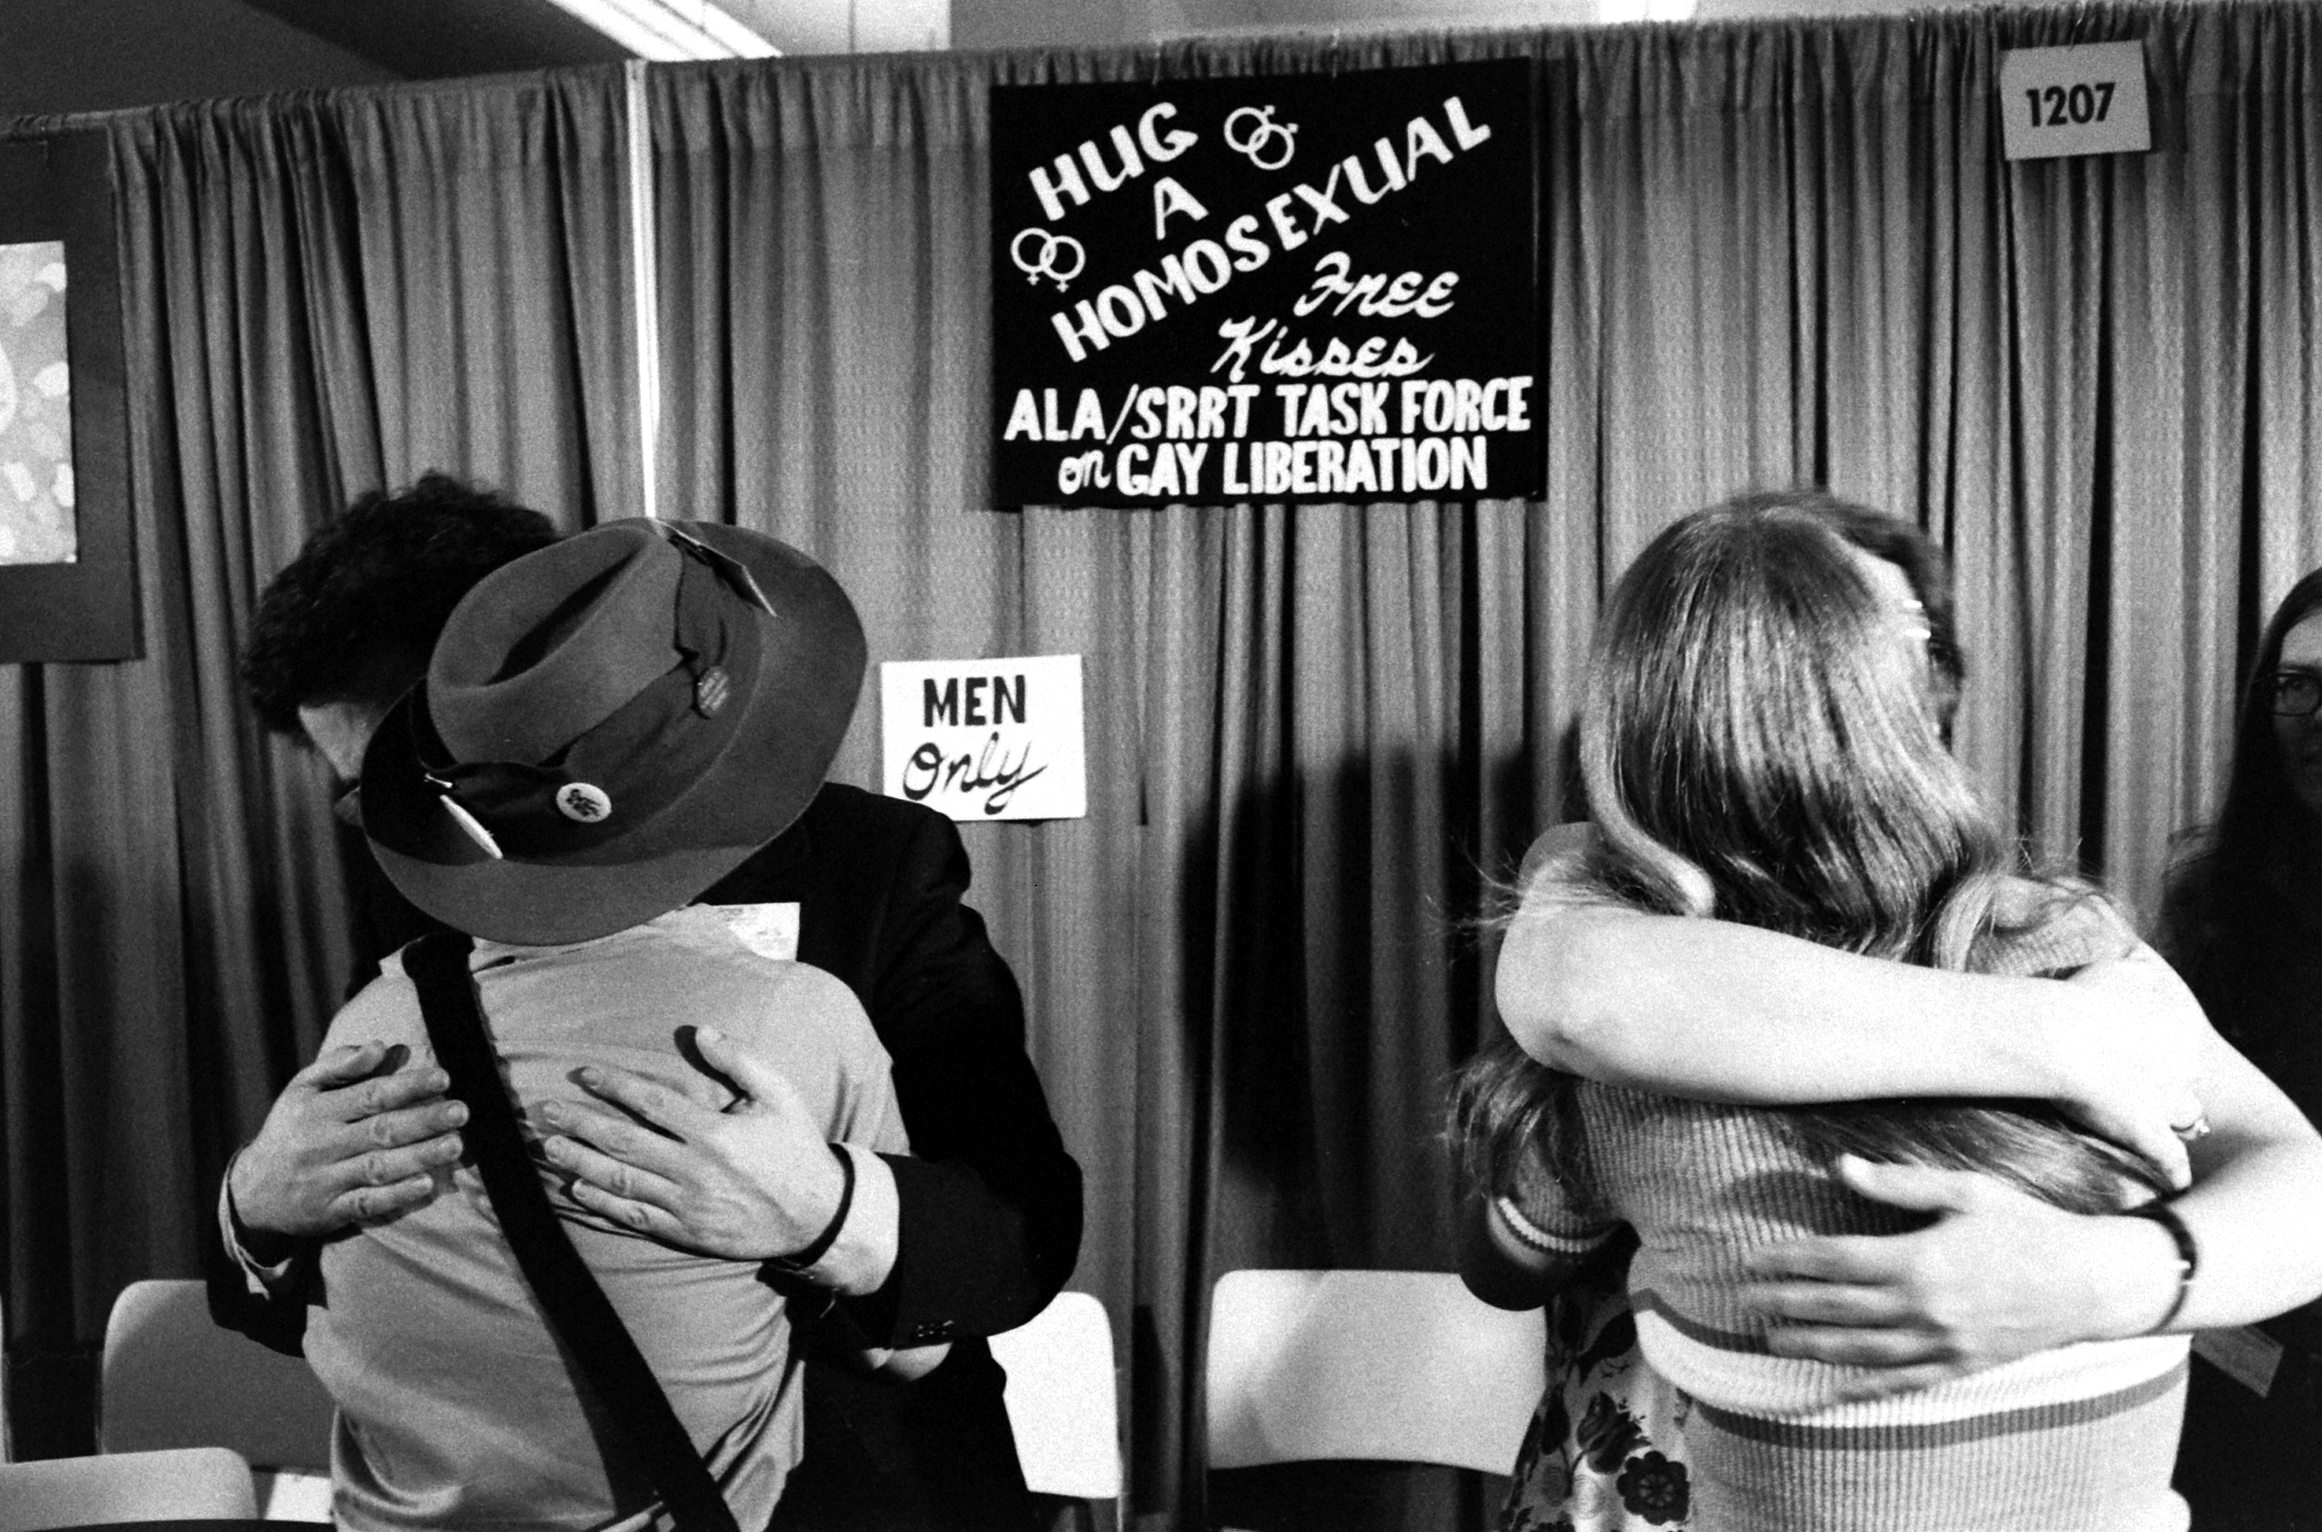 Gay rights event, 1971.